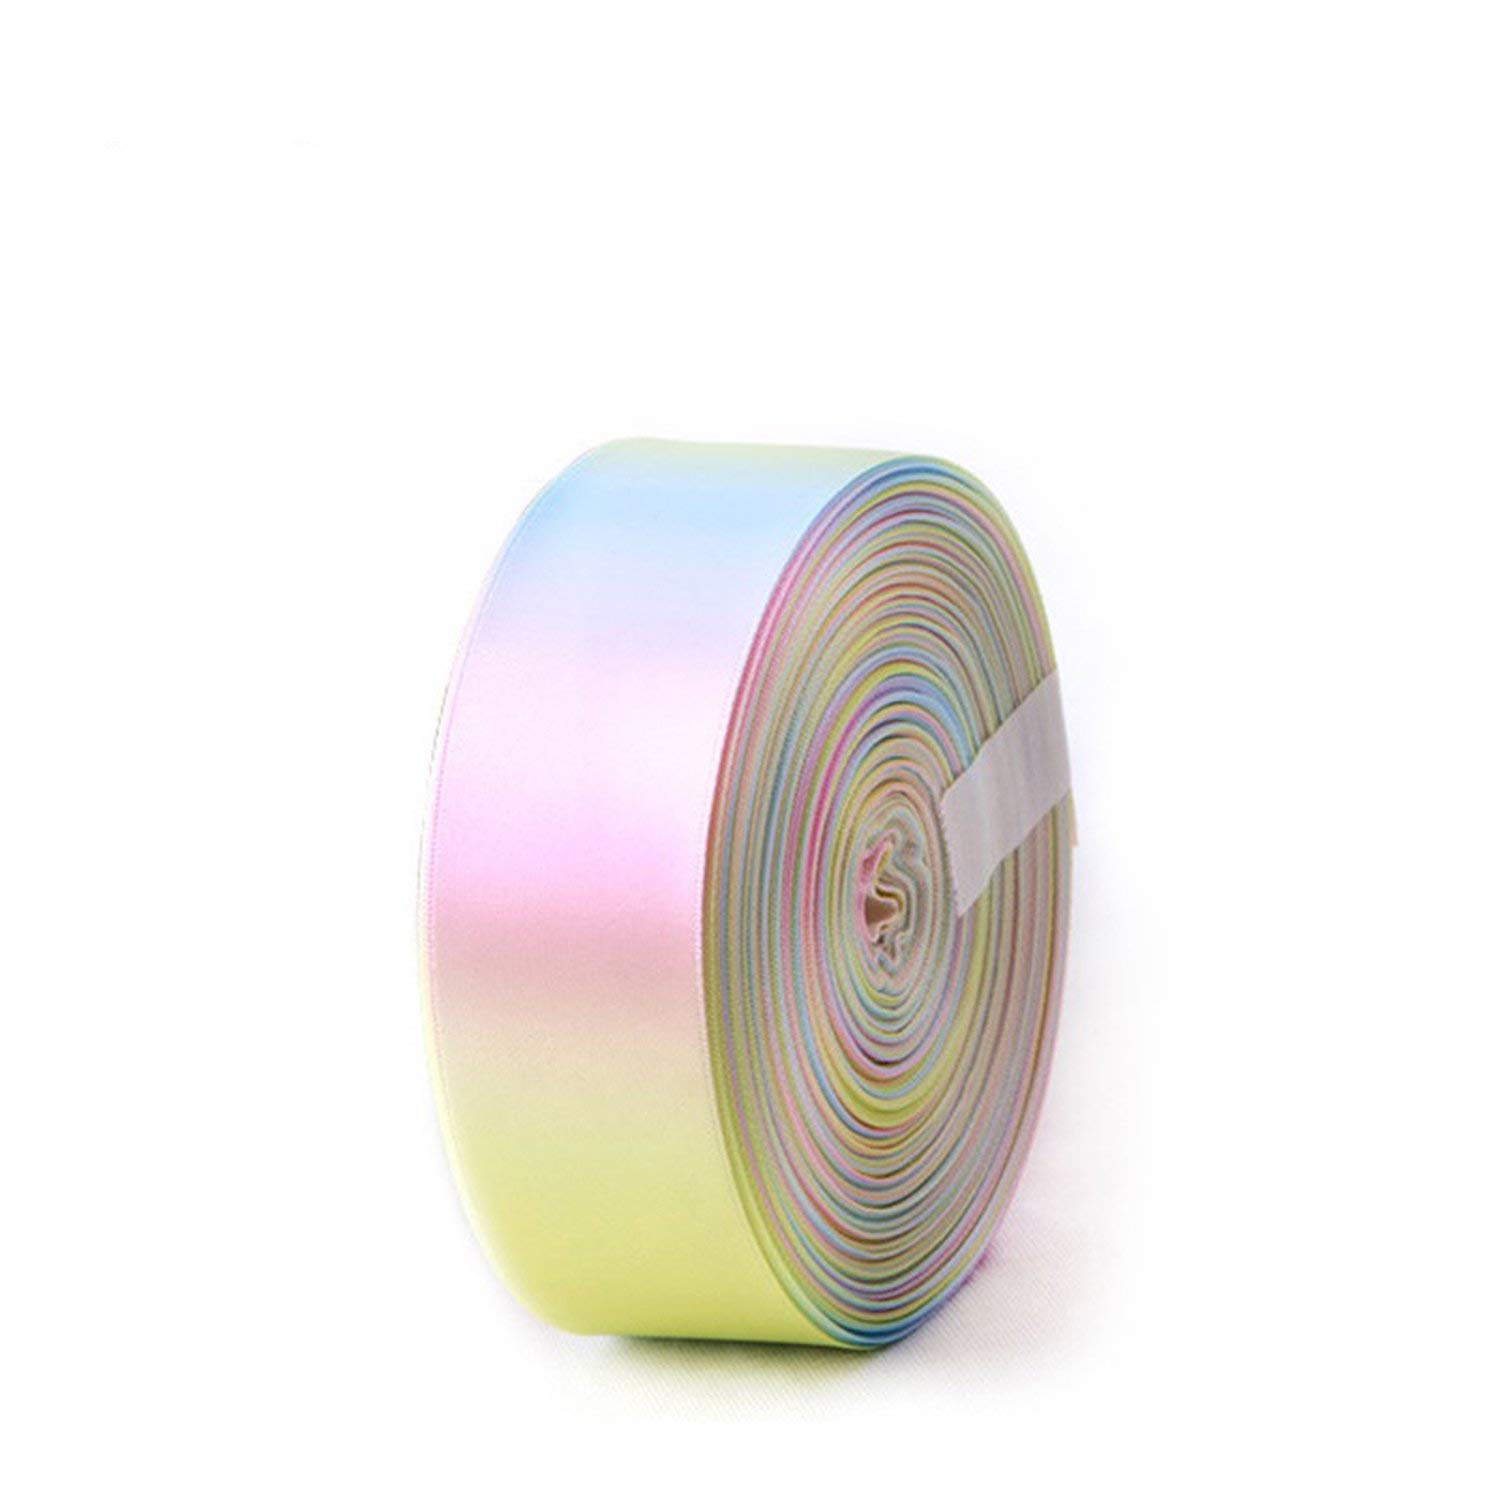 Party Streamers Rainbow Ribbon Printed Polyester Satin Ribbons Handmade Materials,50mm by AYO-LE streamers (Image #3)